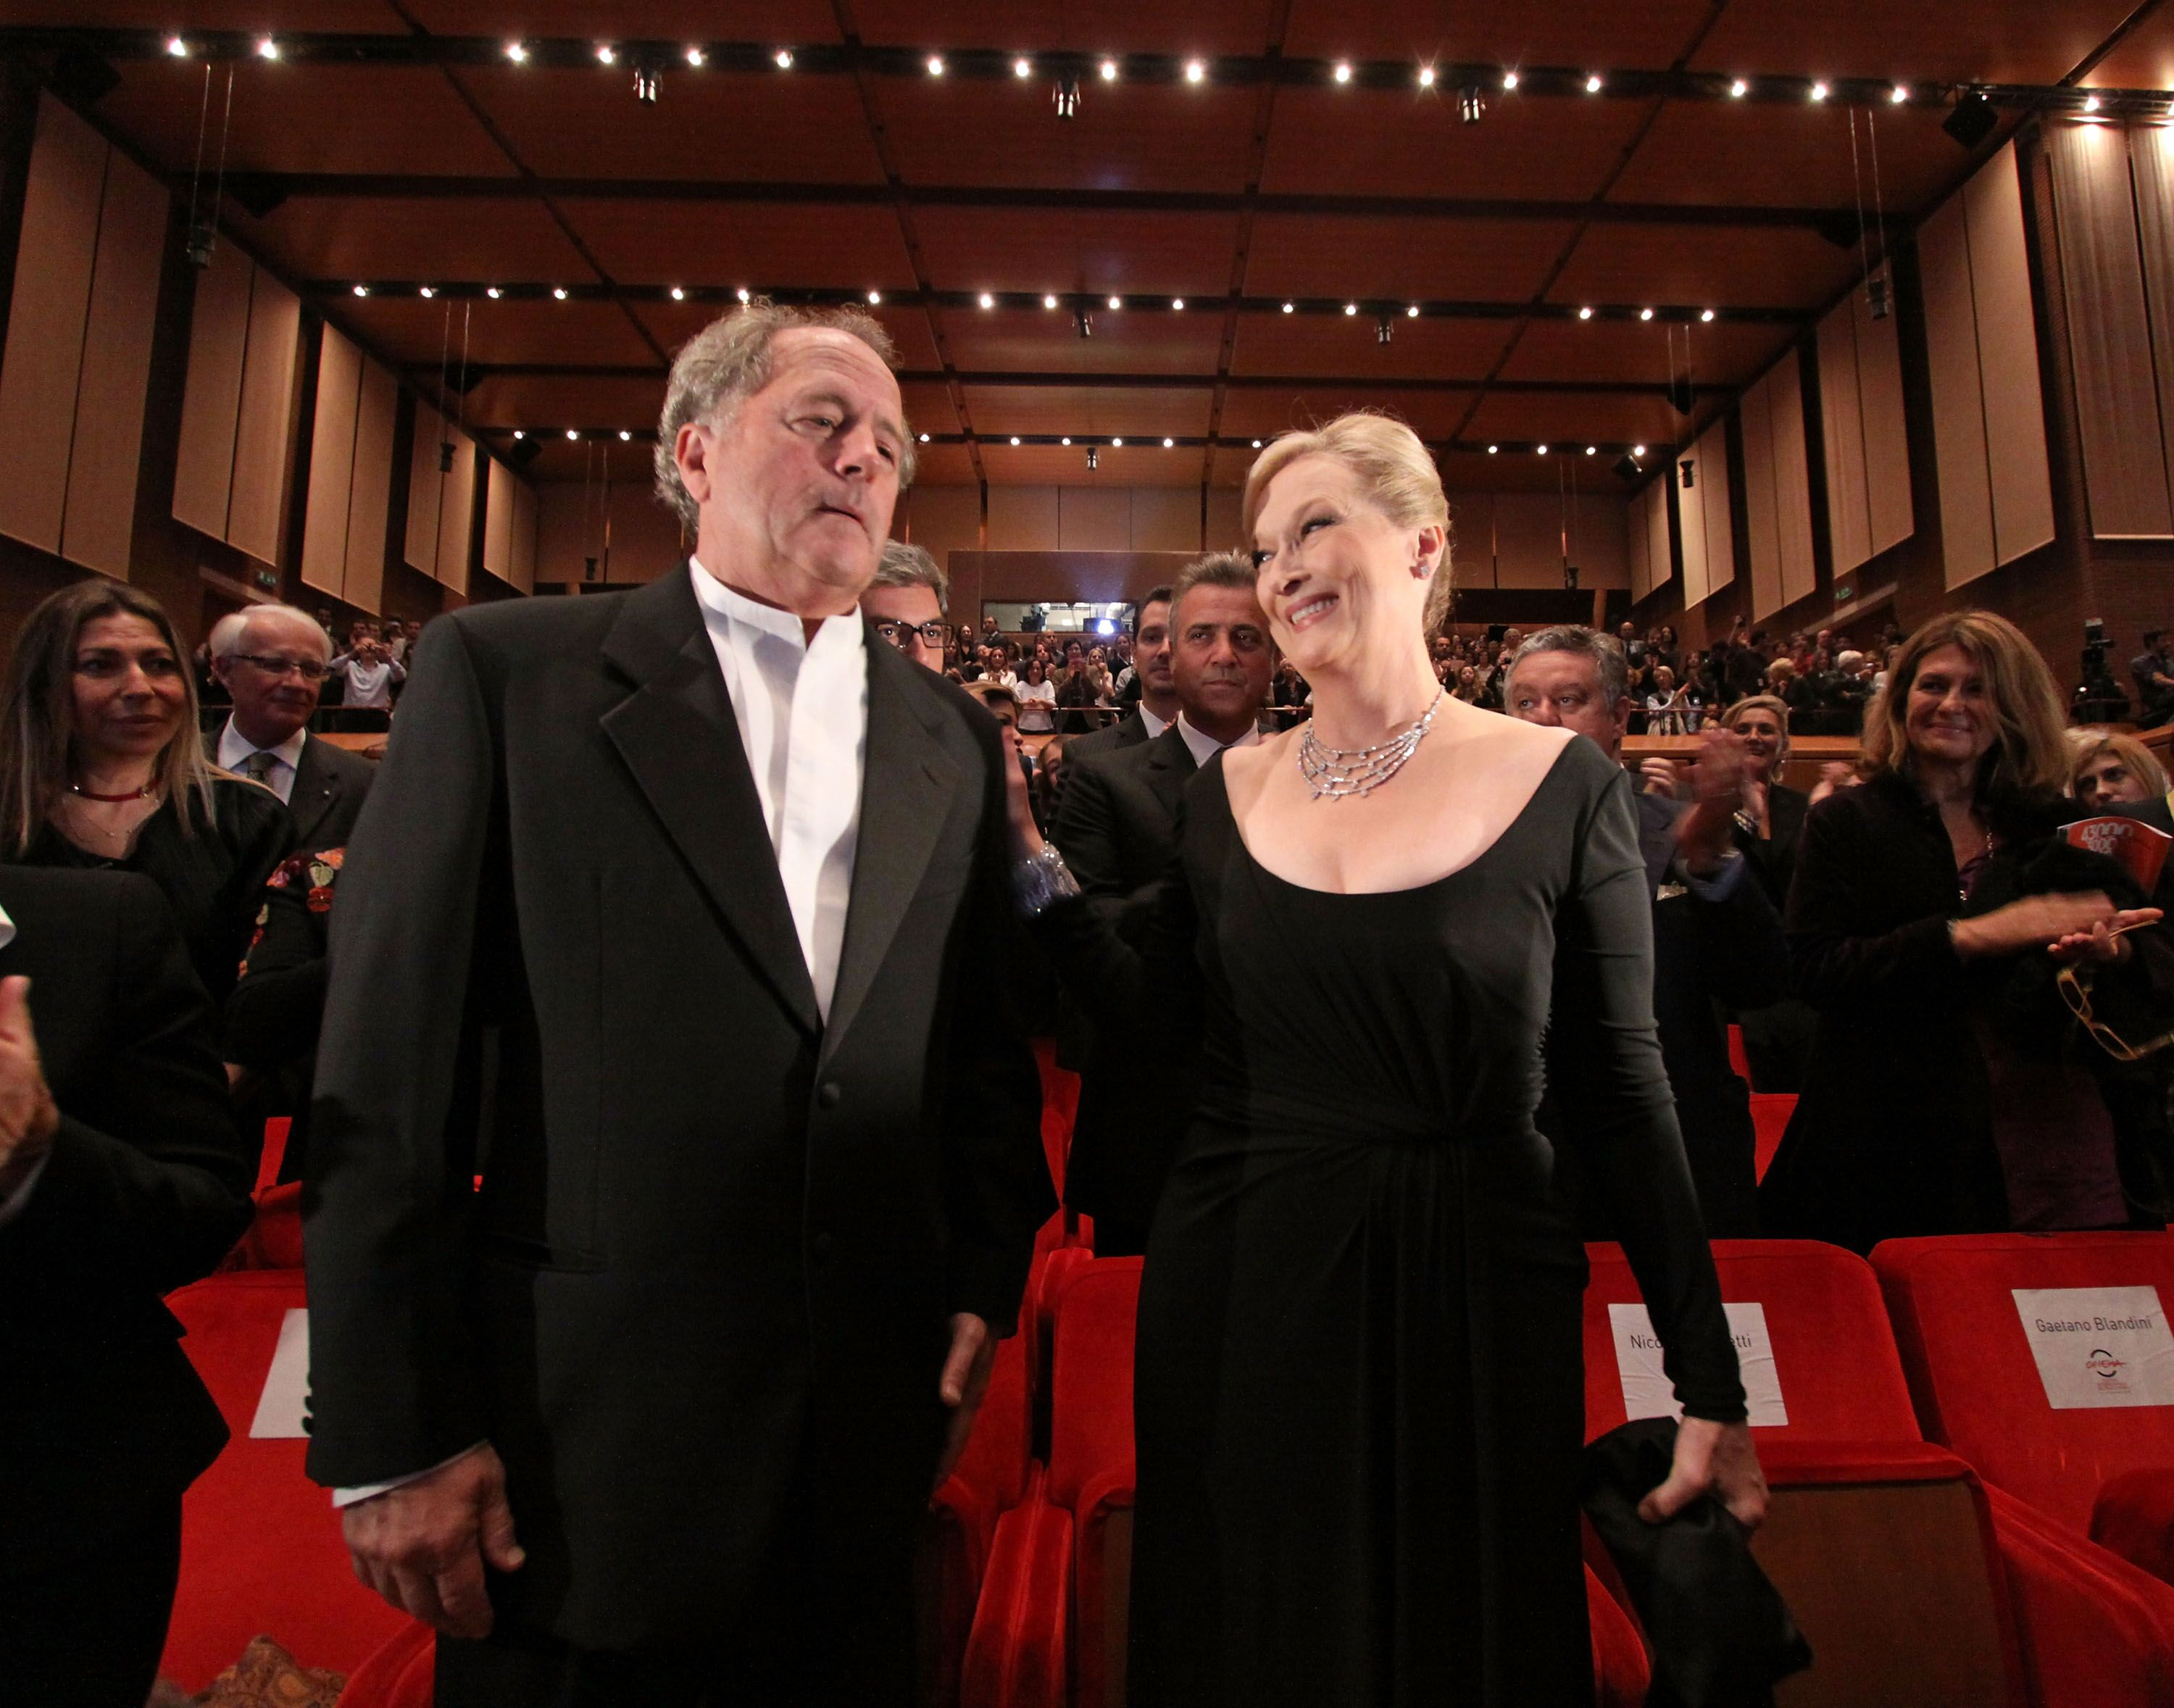 Meryl Streep and Don Gummer attend the Office Awards Ceremony.   Source: Getty Images